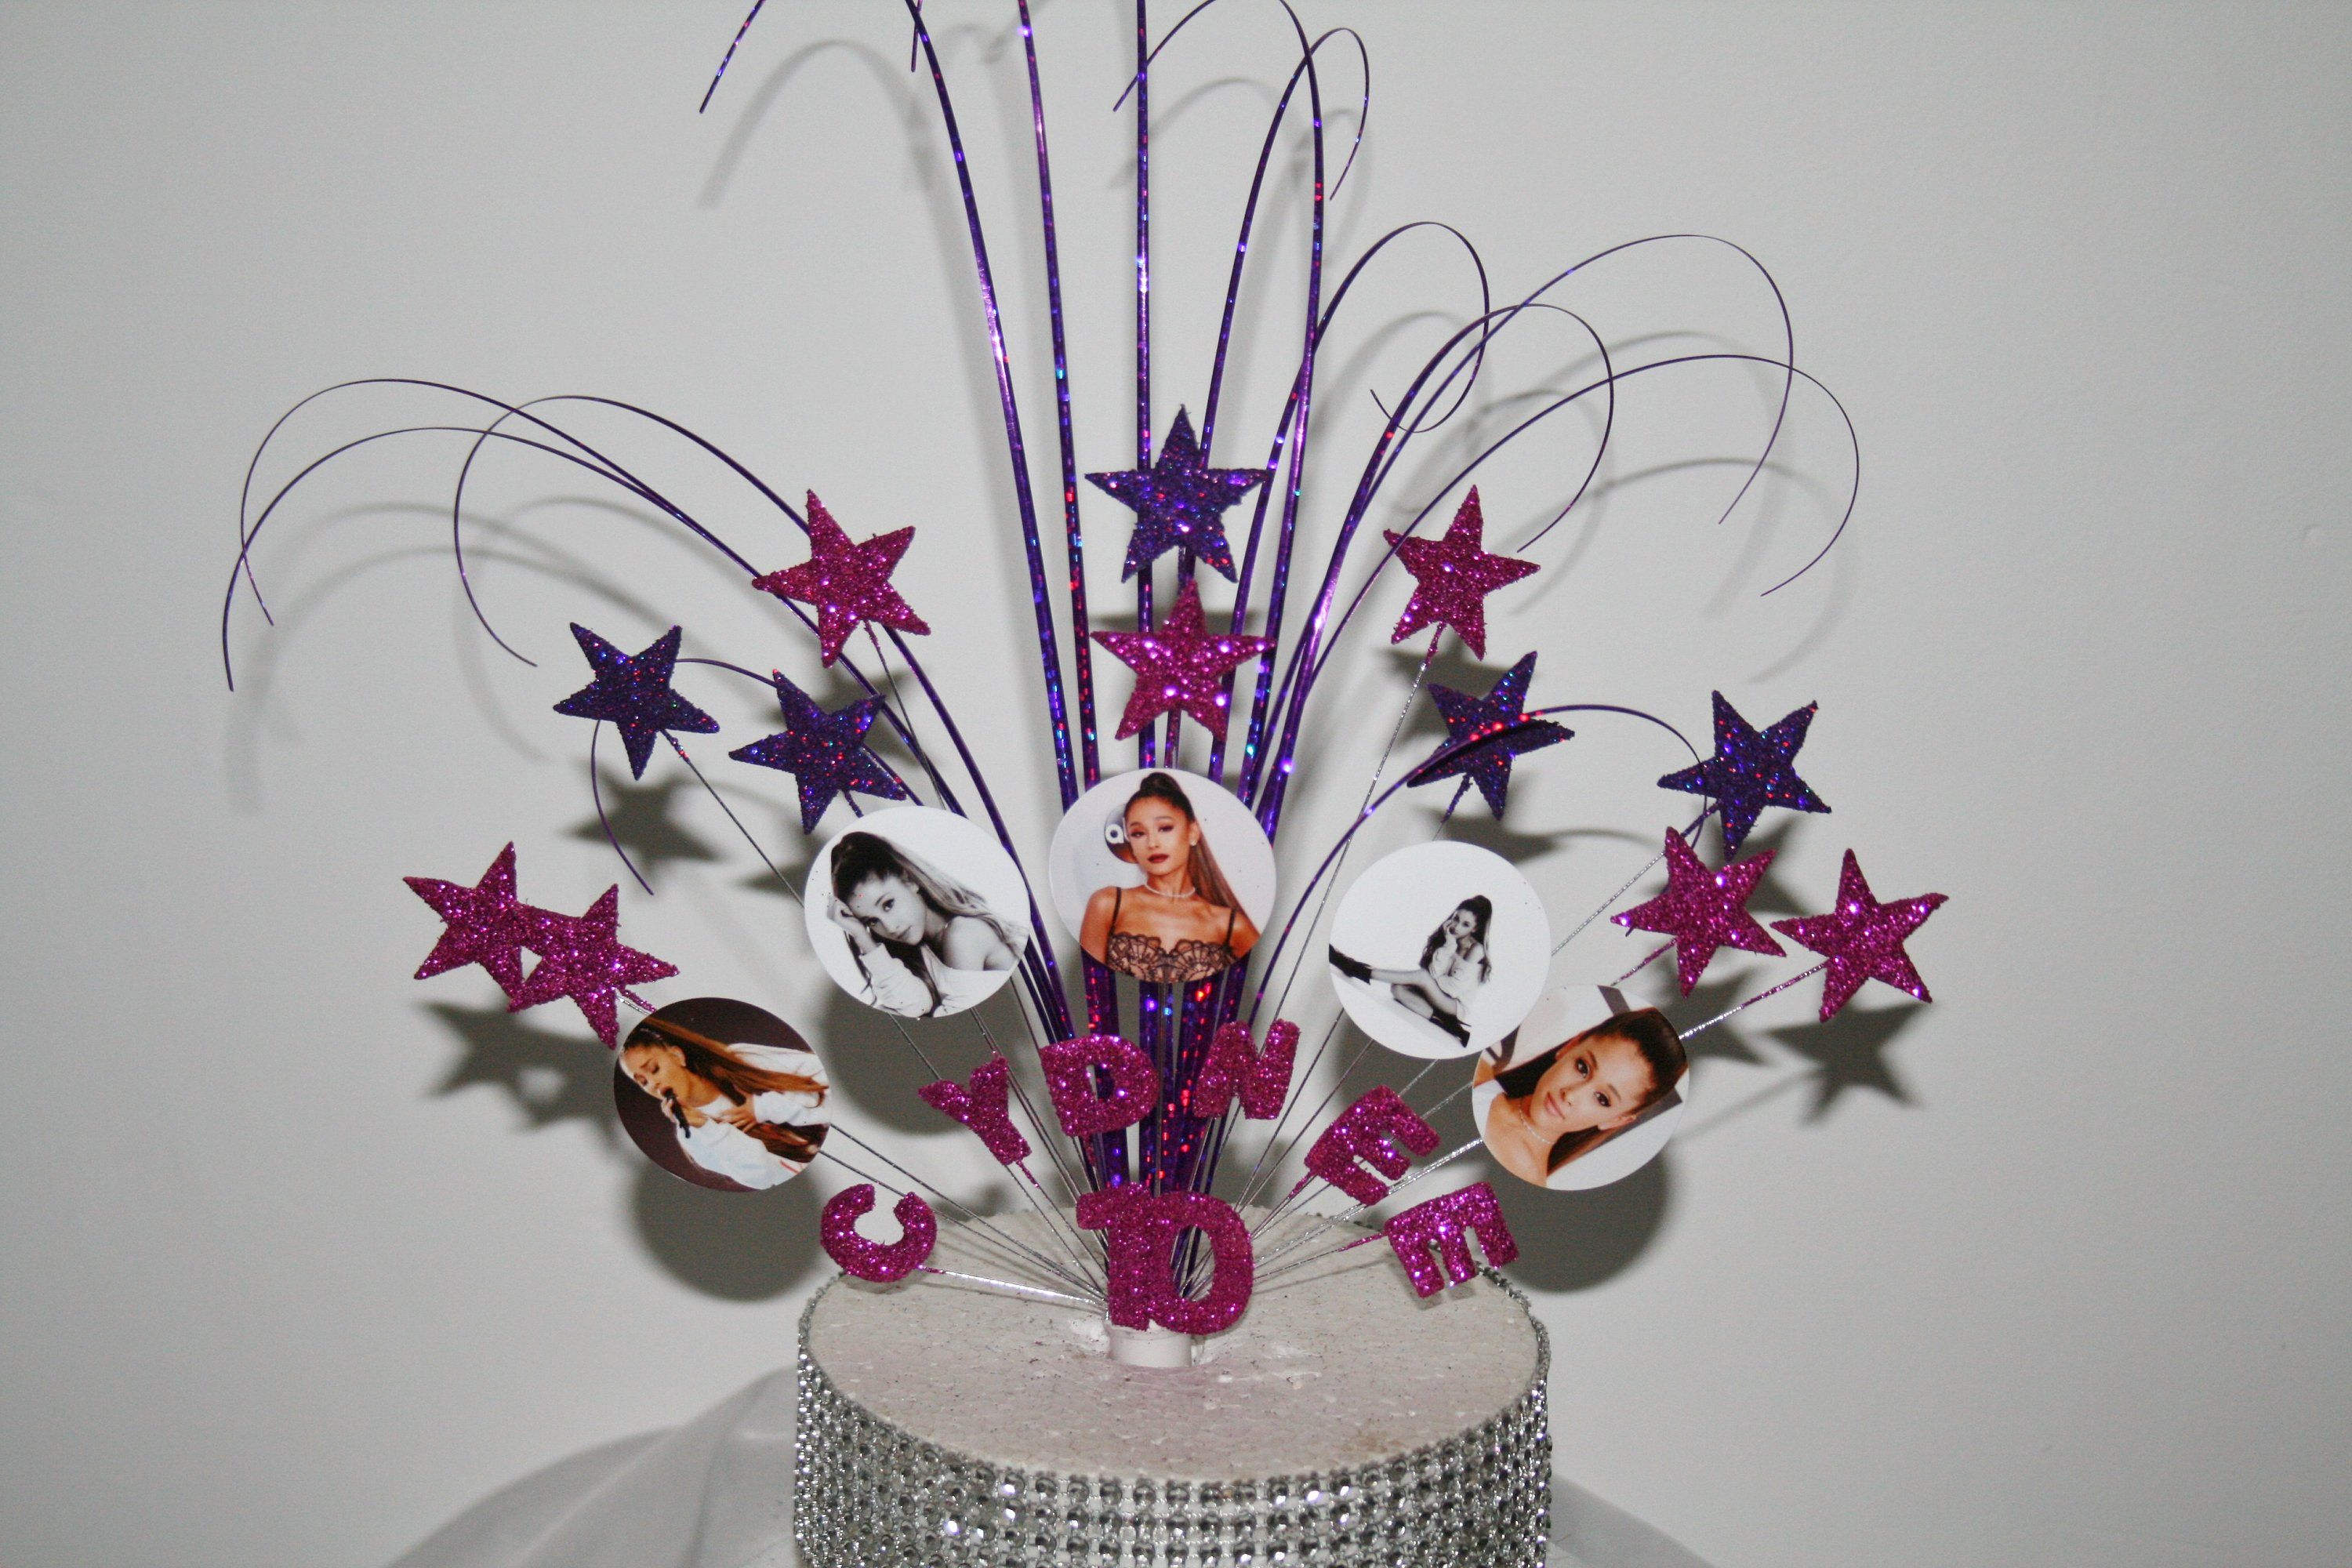 Pin on cake topper/sprays/decorations